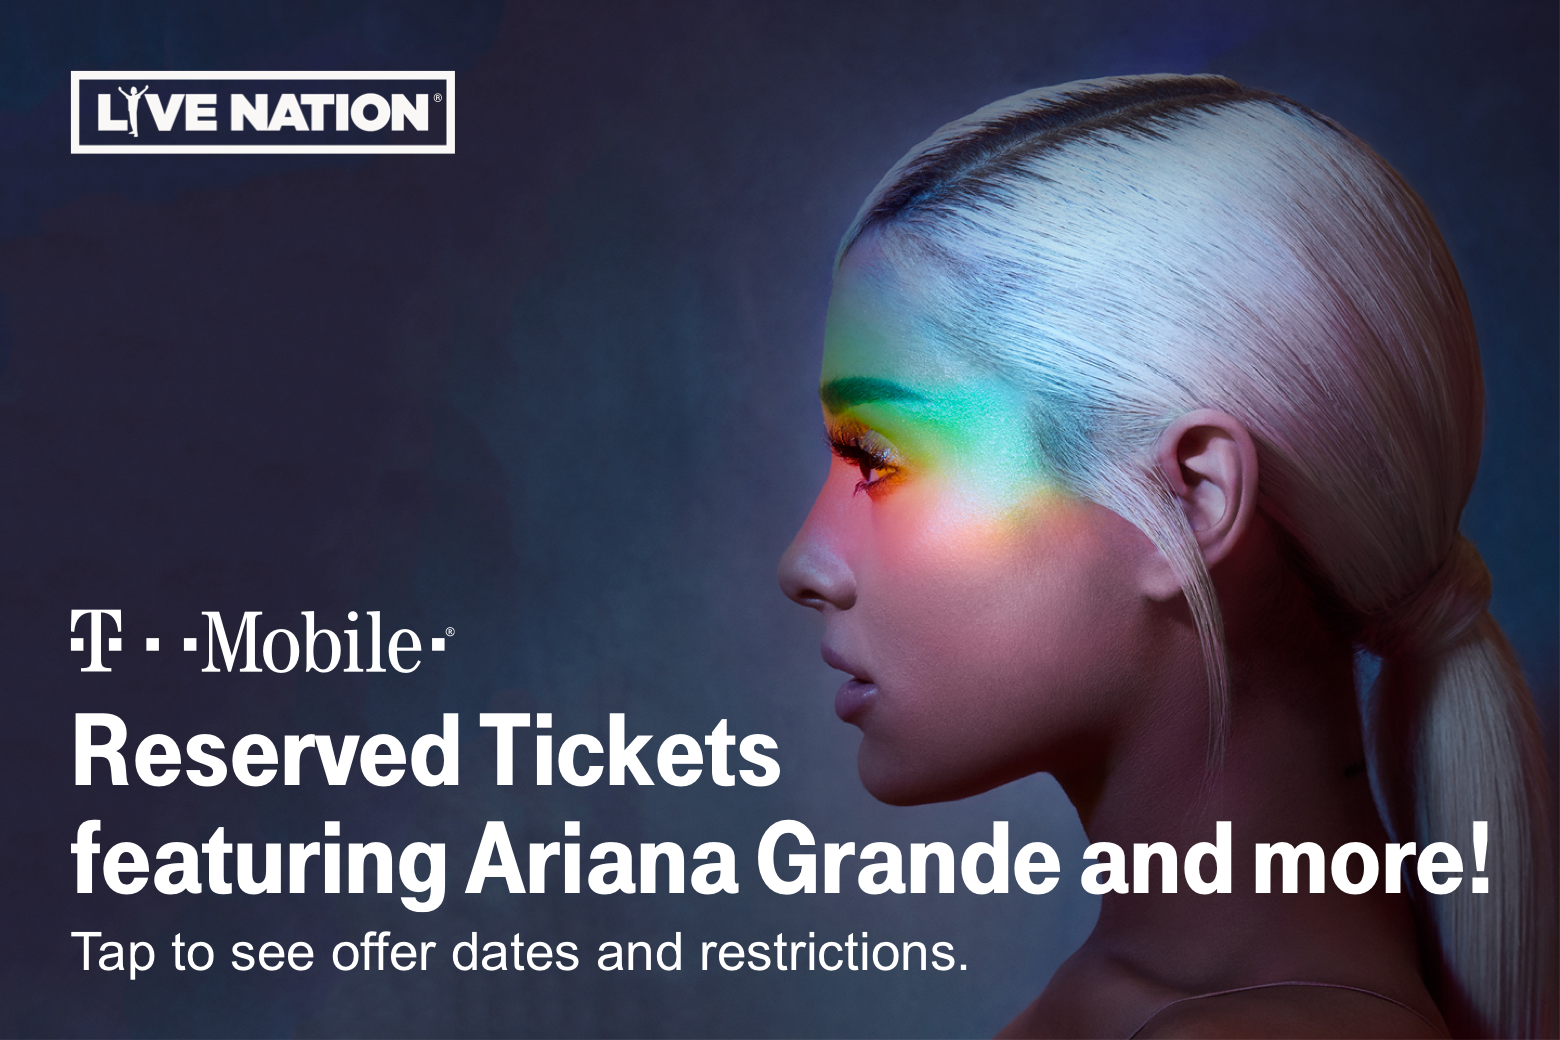 Live Nation. Ariana Grande. T-Mobile Reserved Tickets. Tap to see offer dates and restrictions.